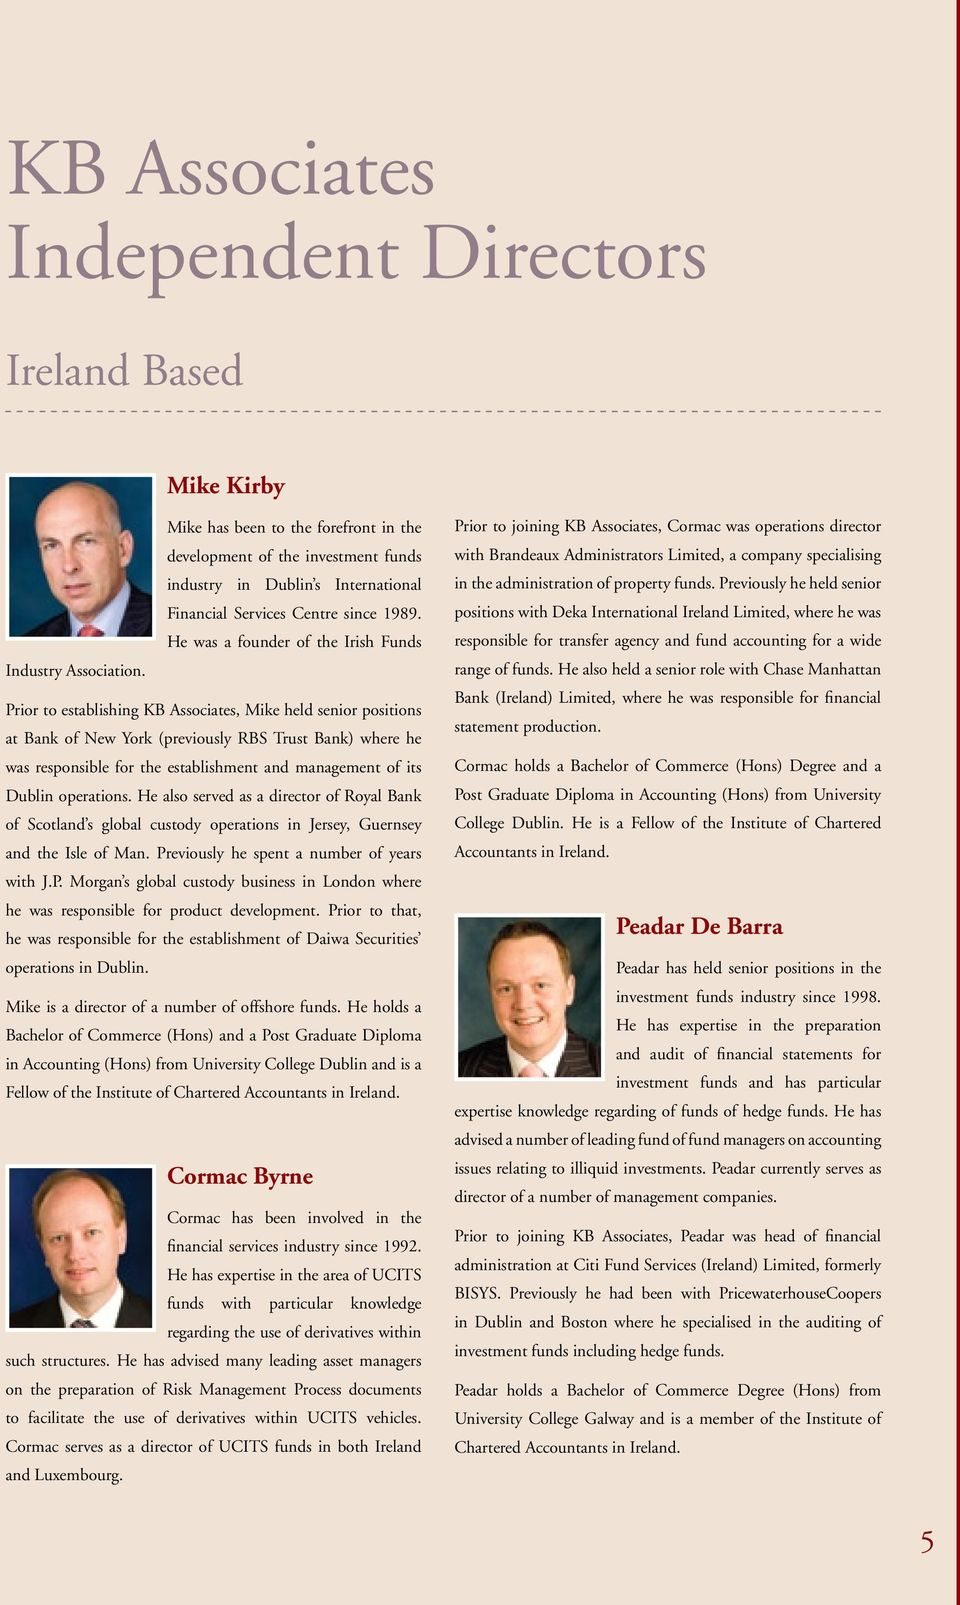 Prior to establishing KB Associates, Mike held senior positions at Bank of New York (previously RBS Trust Bank) where he was responsible for the establishment and management of its Dublin operations.